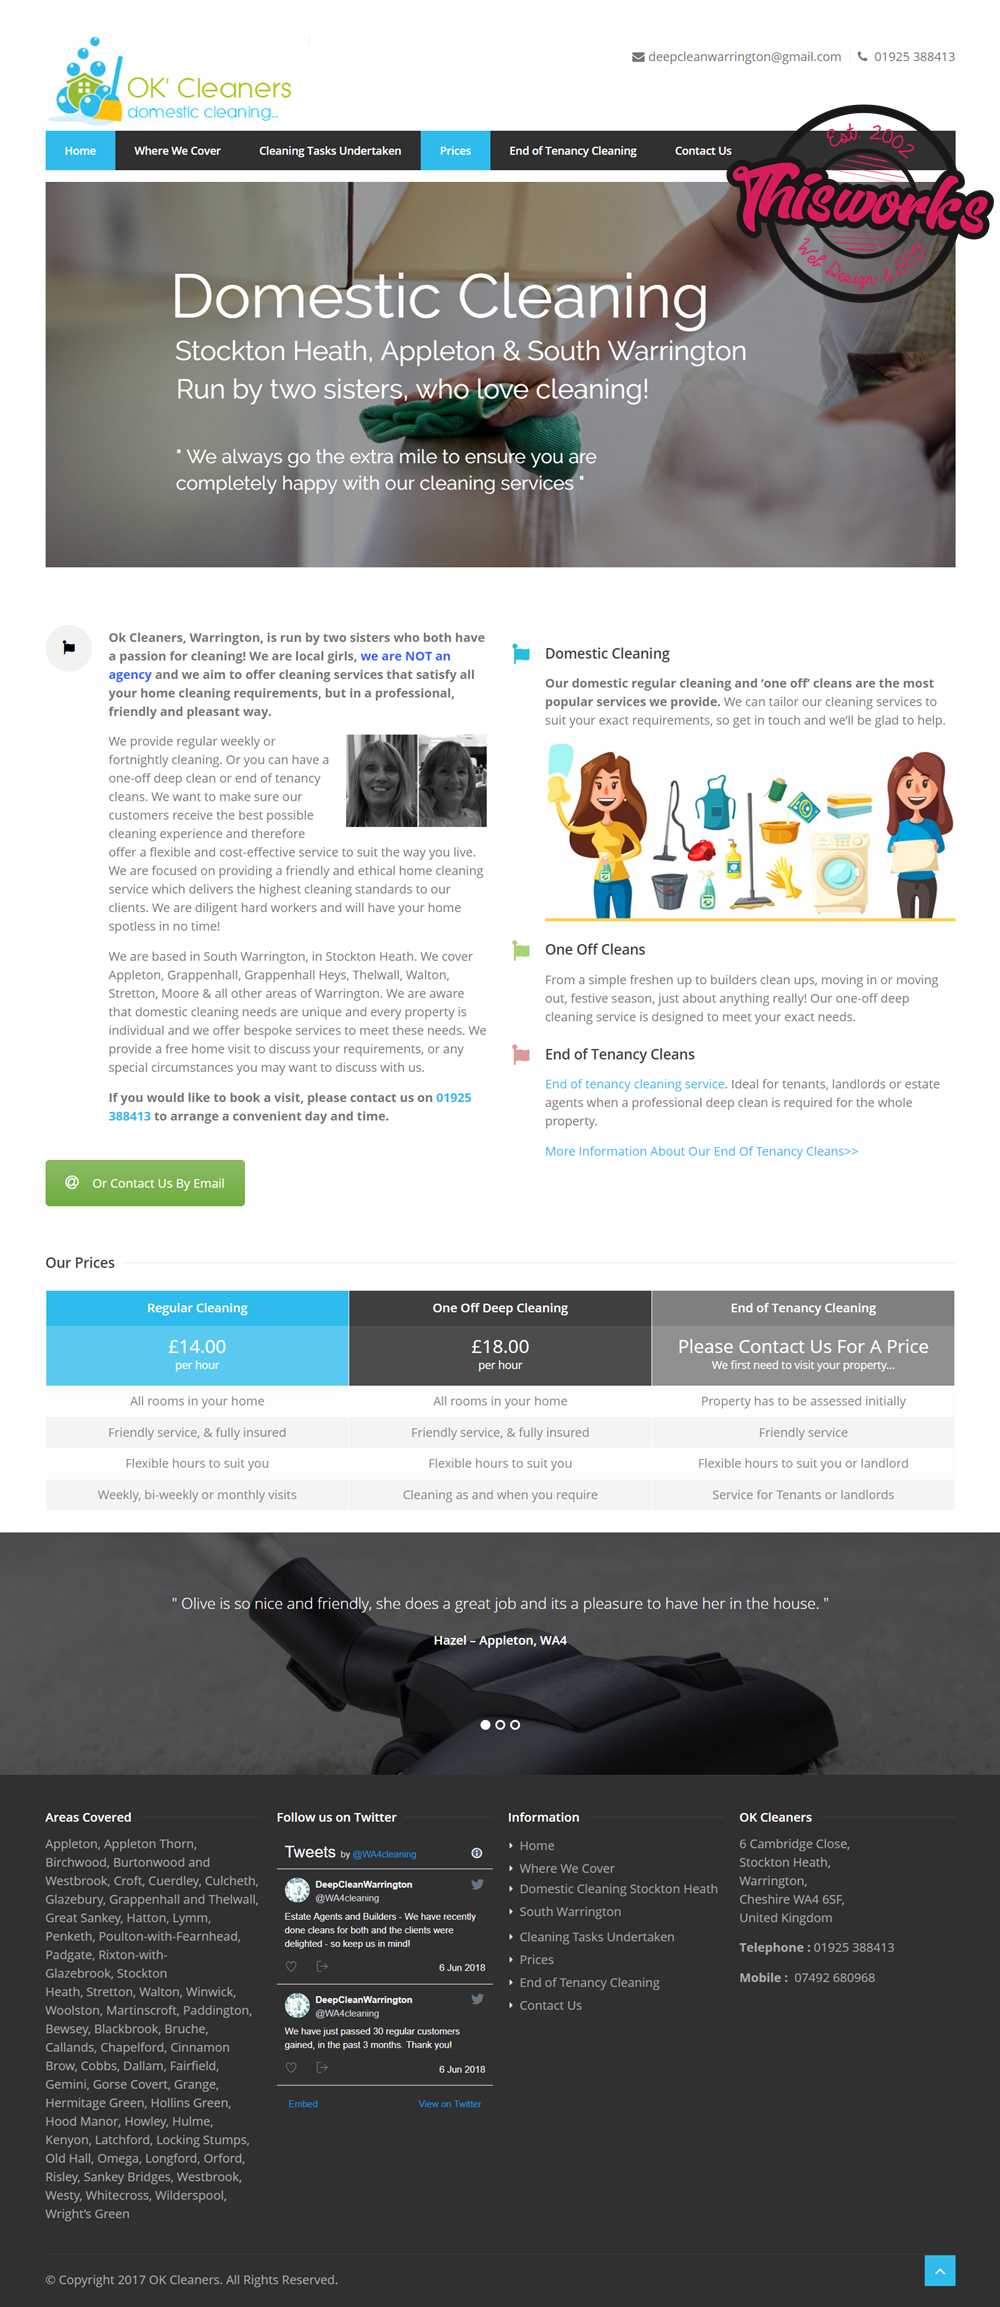 Website Design Stockport - Domestic Cleaners